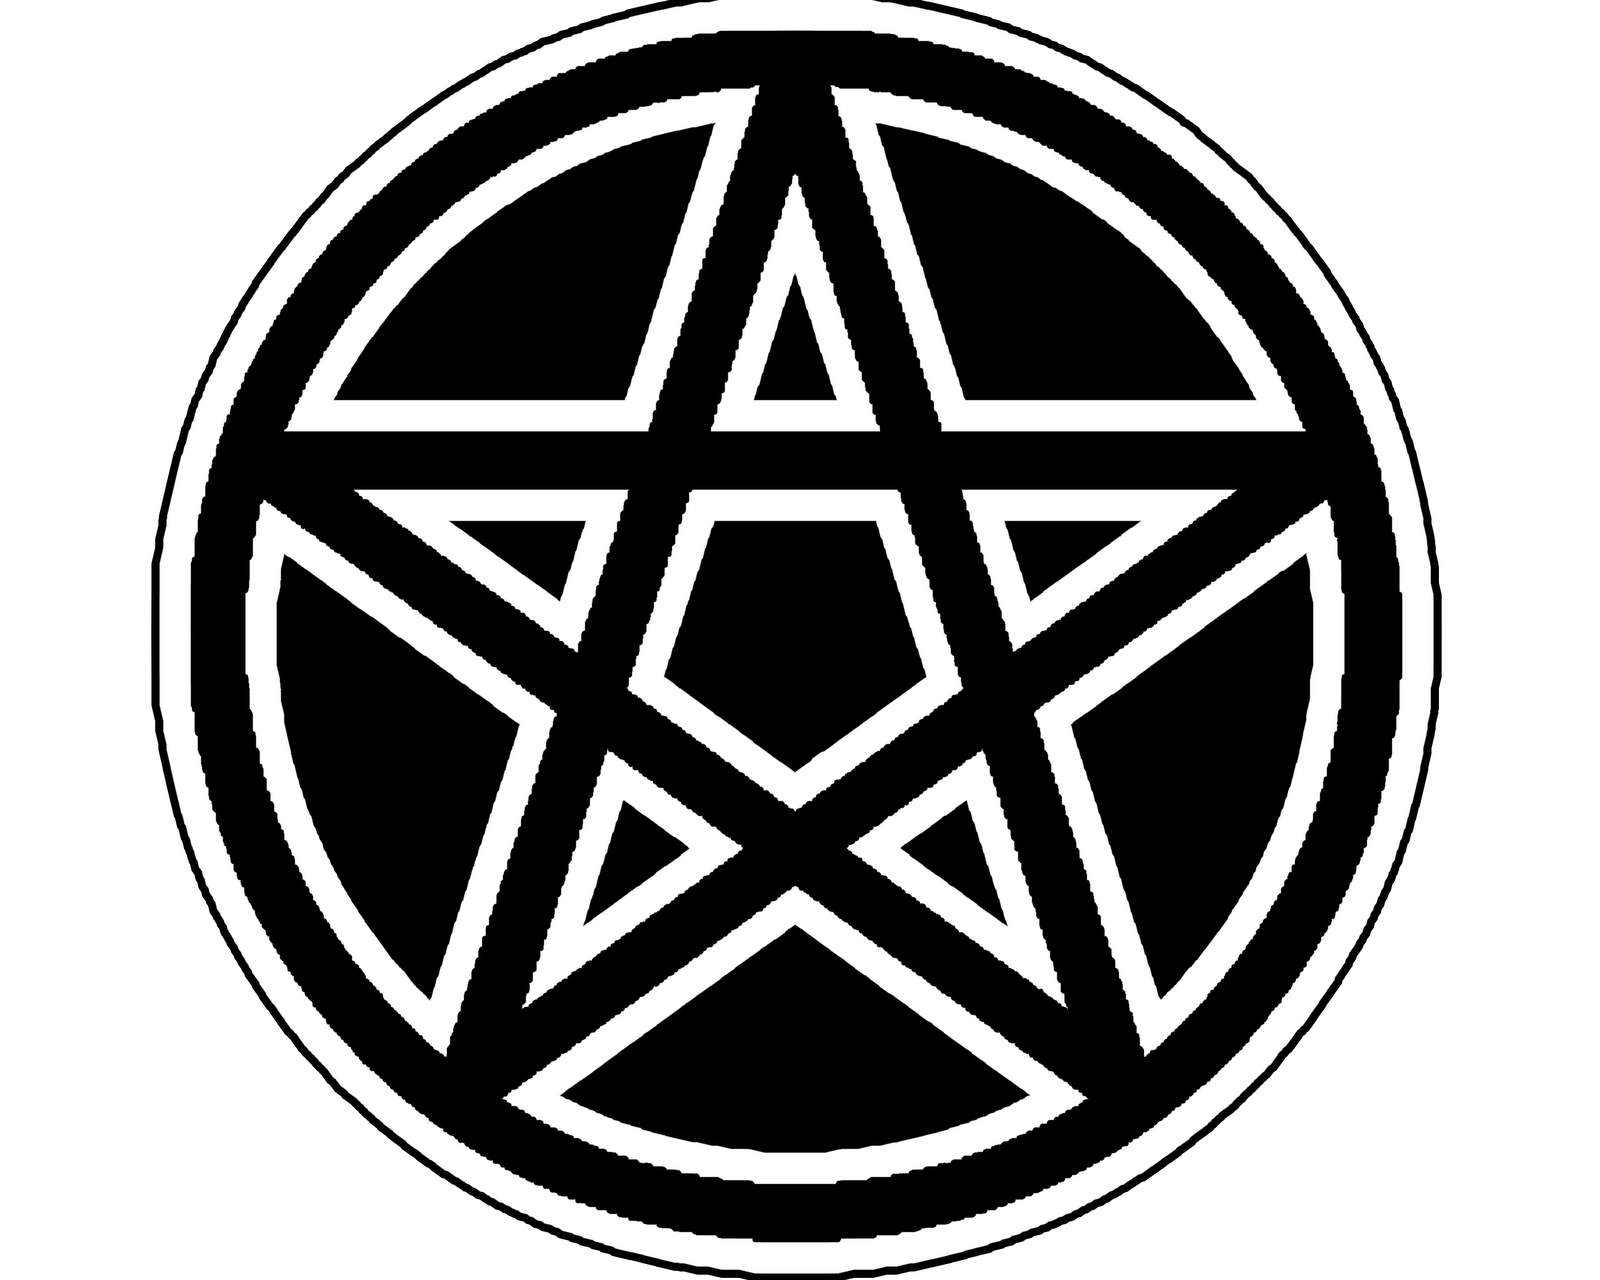 Albertos grimoire stylized lesser banishing ritual of the pentagram negative connotations the perversion and defilement of the sacred and its upright position similar to an upside down cross defiling the christ and all biocorpaavc Choice Image